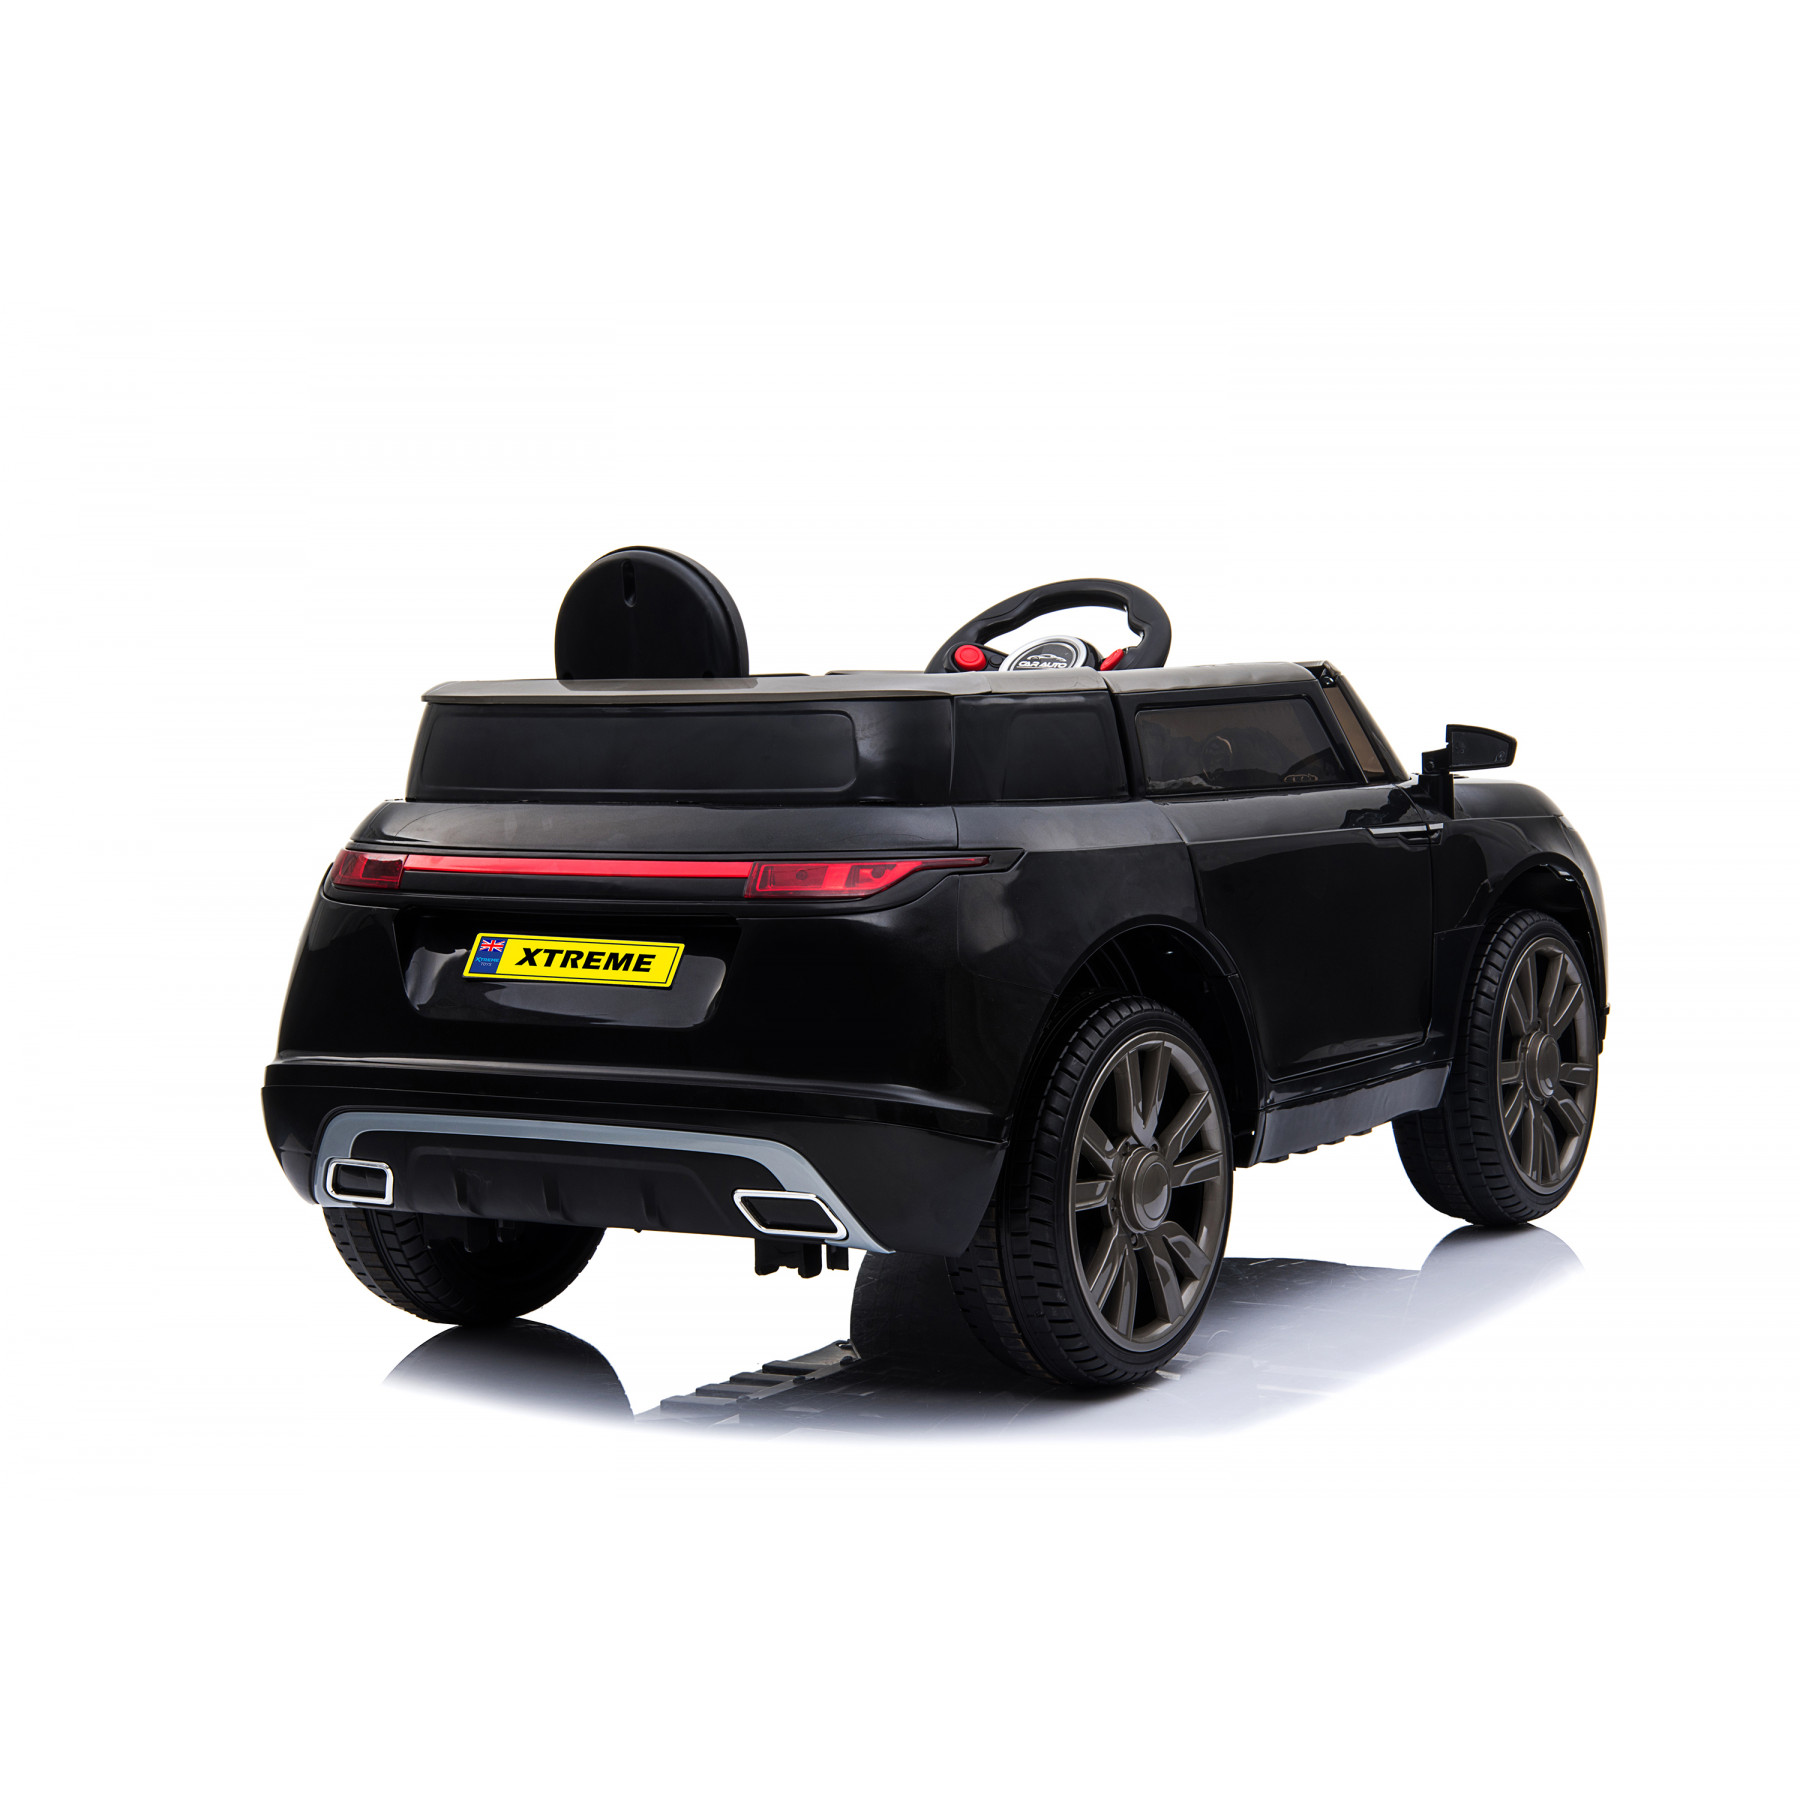 Xtreme 12V RR Sport Style Ride on Electric Car Black